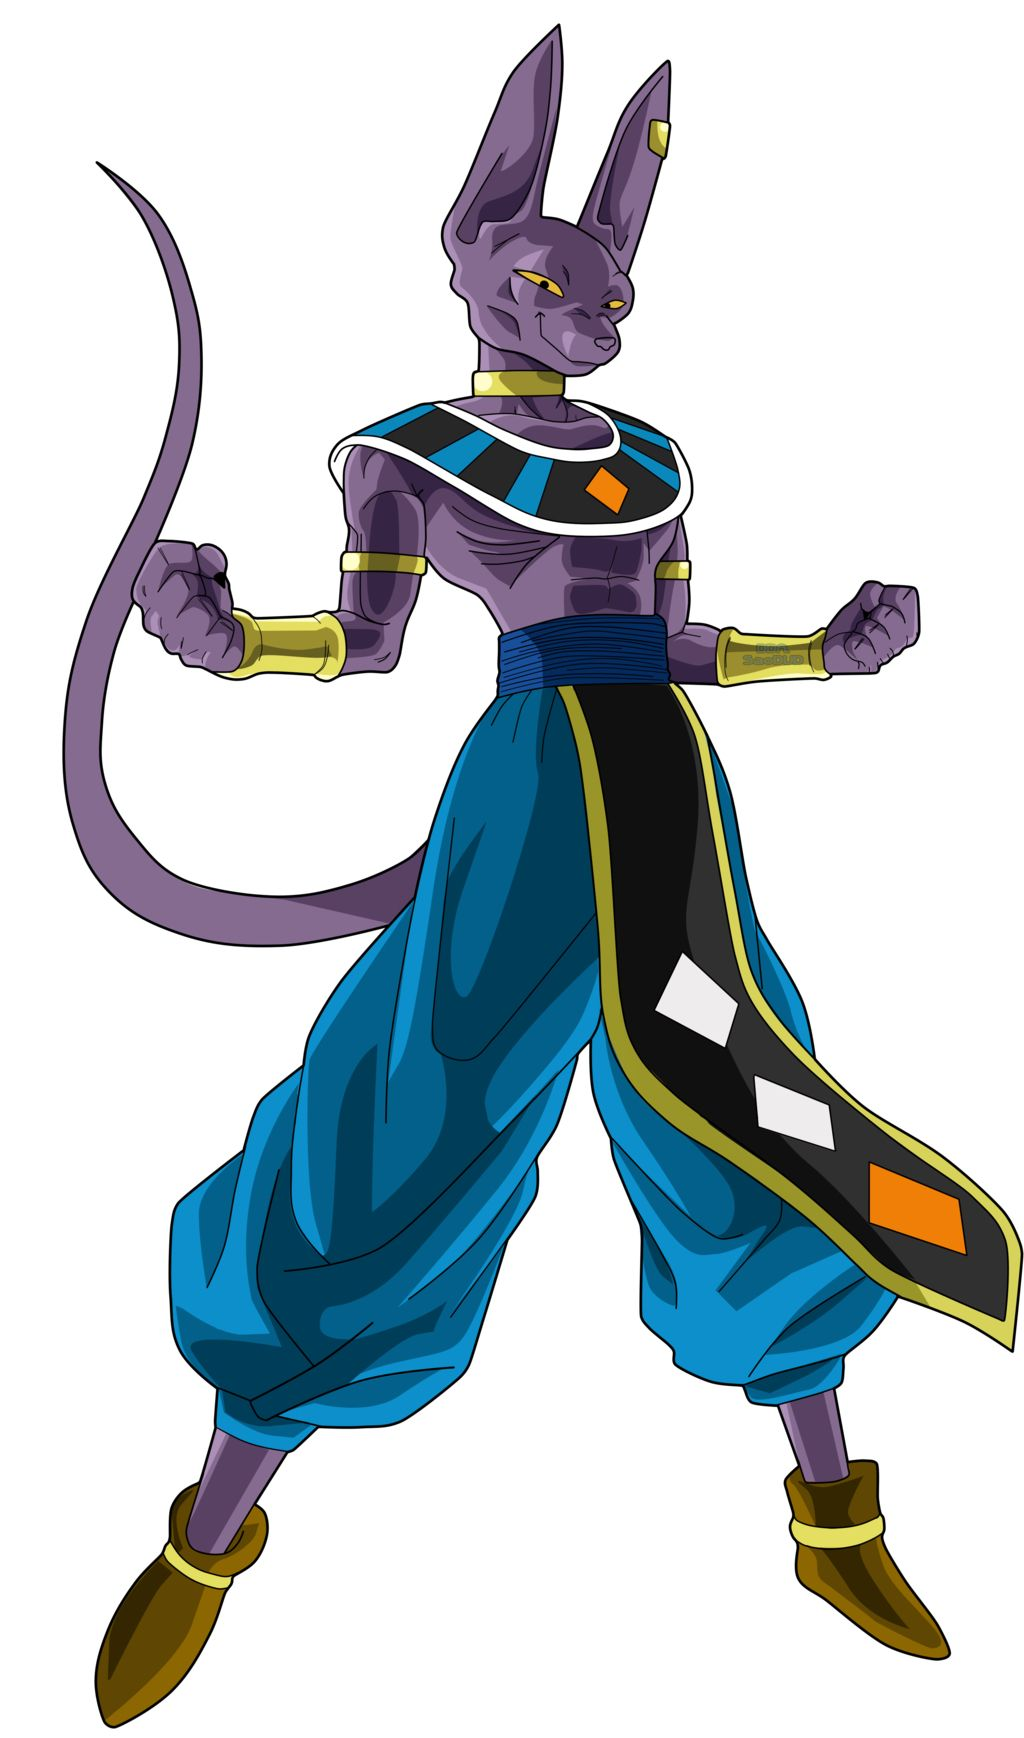 Beerus The God by SaoDVD on DeviantArt